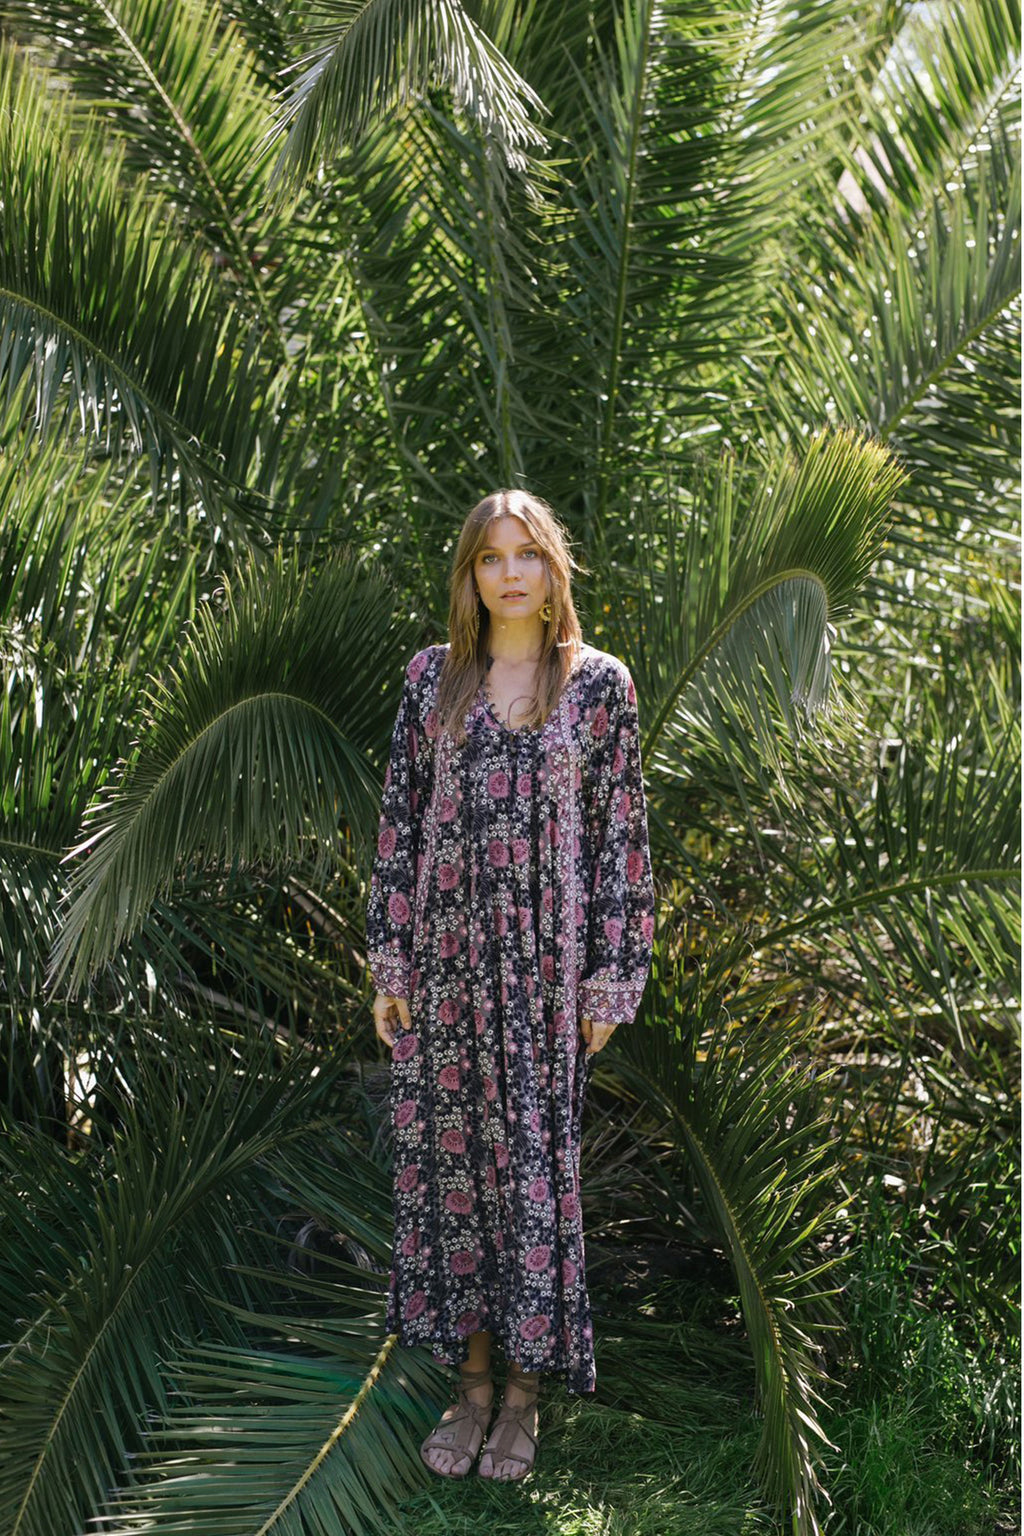 Natalie Martin Fiora Maxi Dress in Vintage Flowers Violet